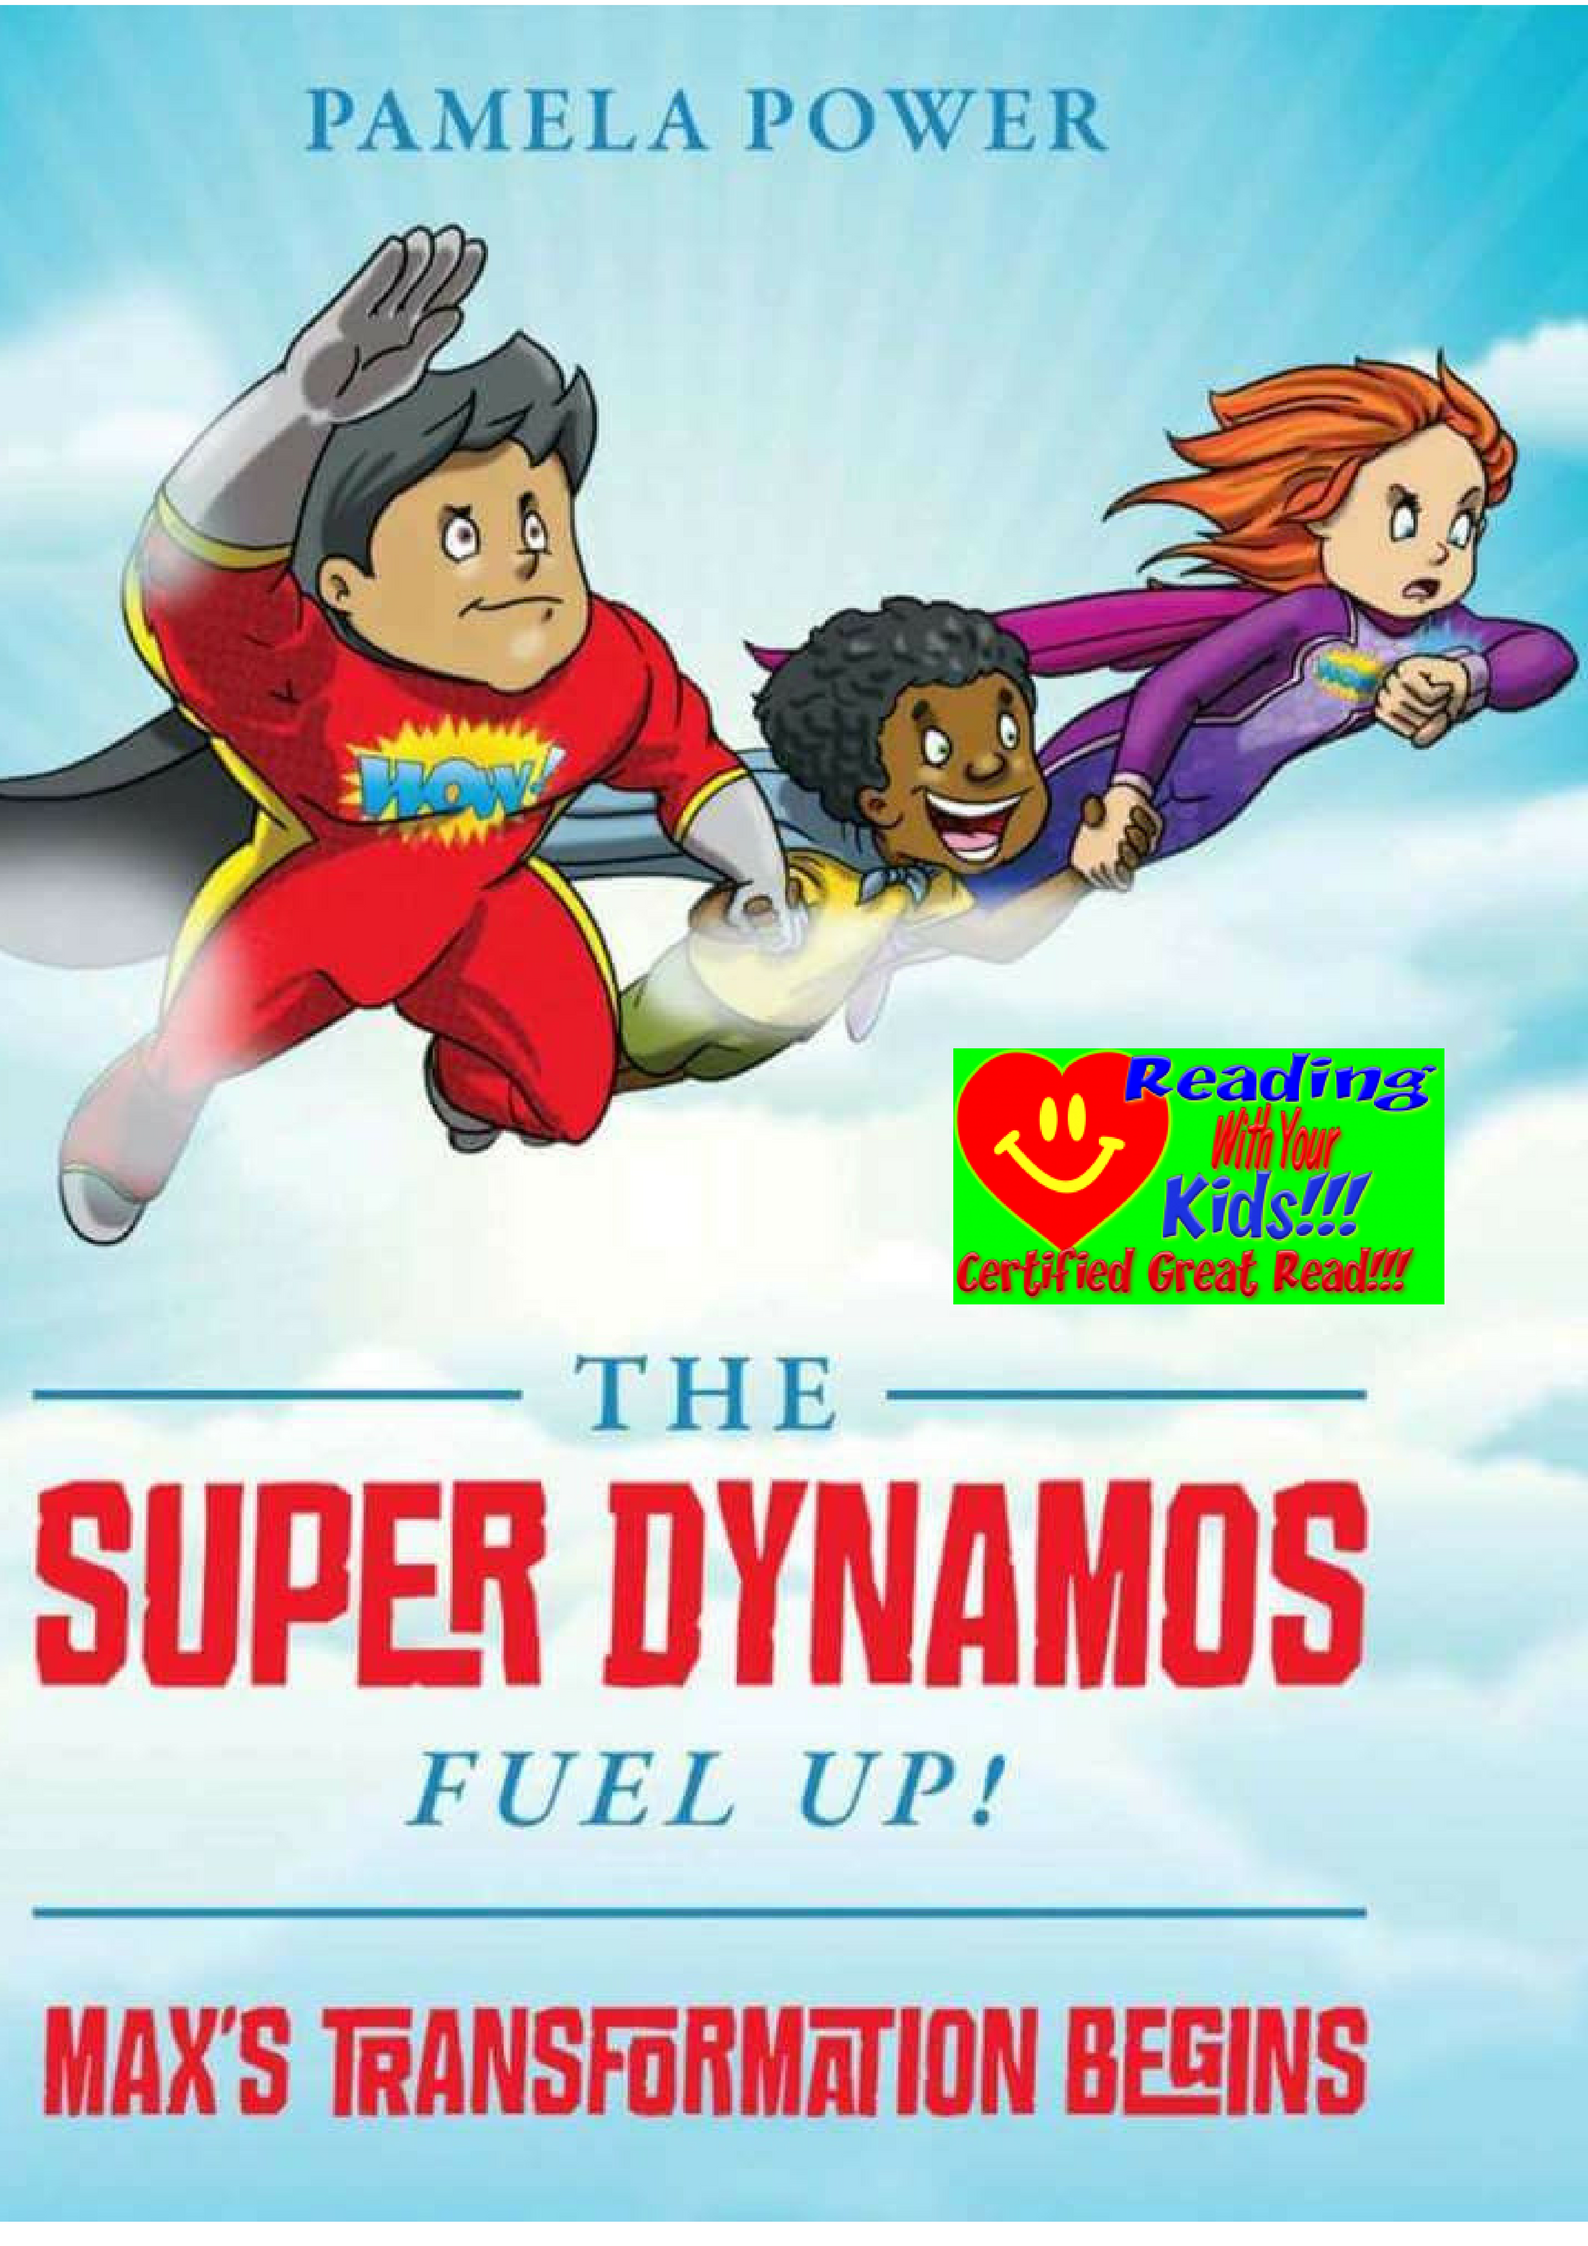 The Super Dynamos, Volume 1- Fuel Up!: #RWYK Great Read Certified